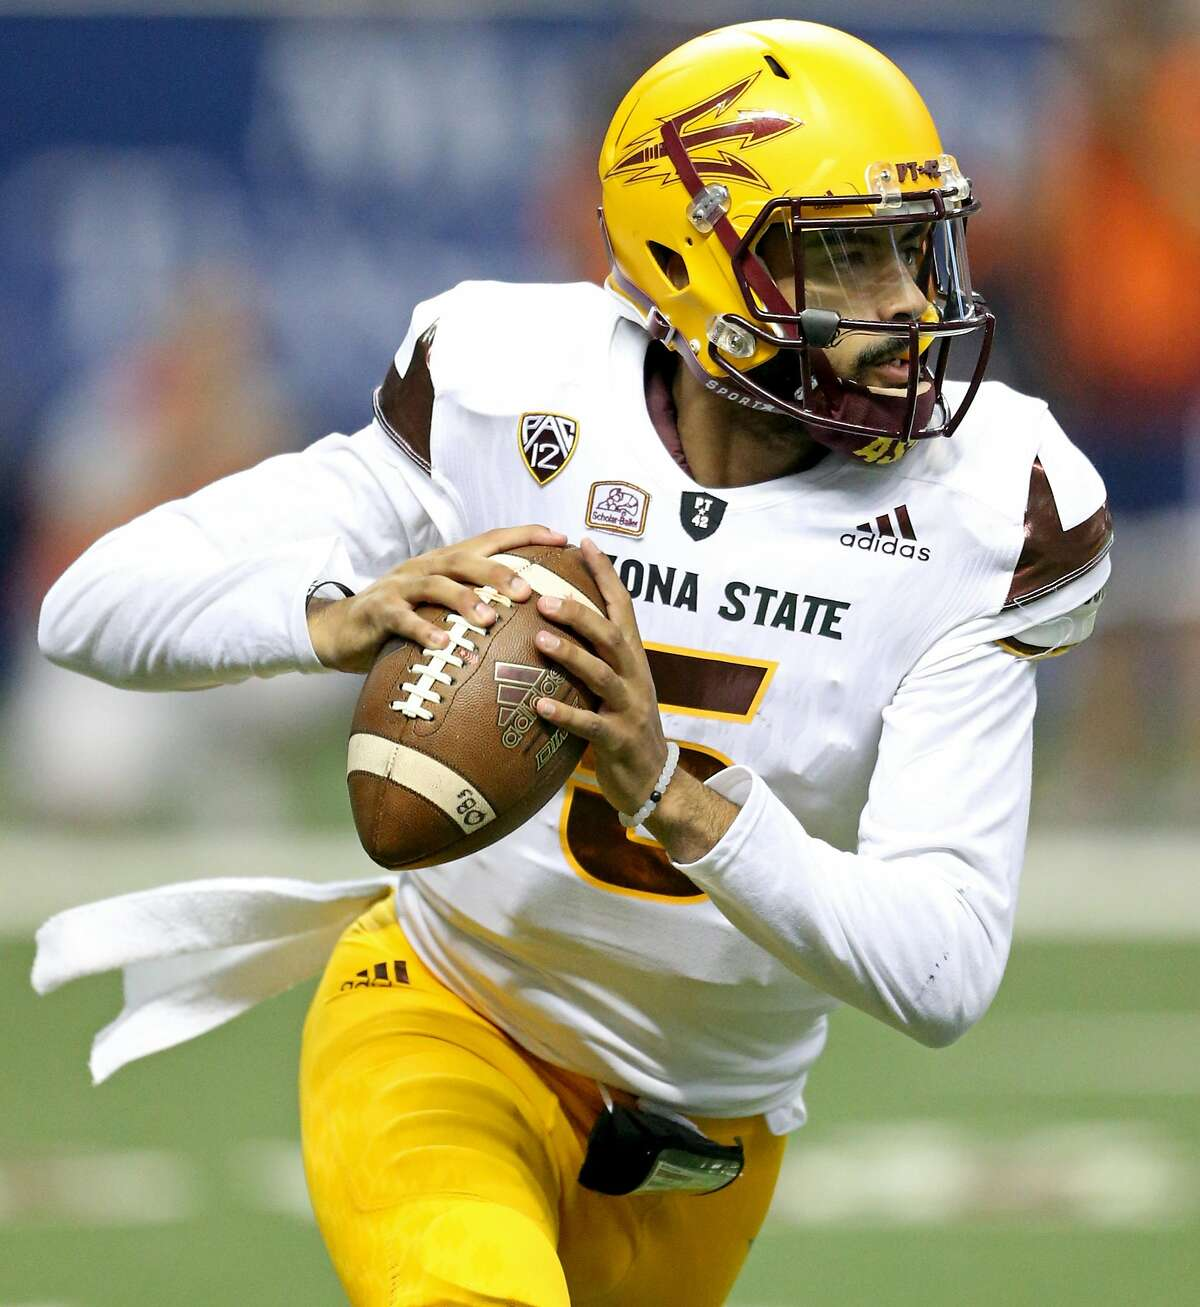 Arizona State Sun Devils quarterback Manny Wilkins looks to pass during first half action against the UTSA Roadrunners Friday Sept. 16, 2016 at the Alamodome.